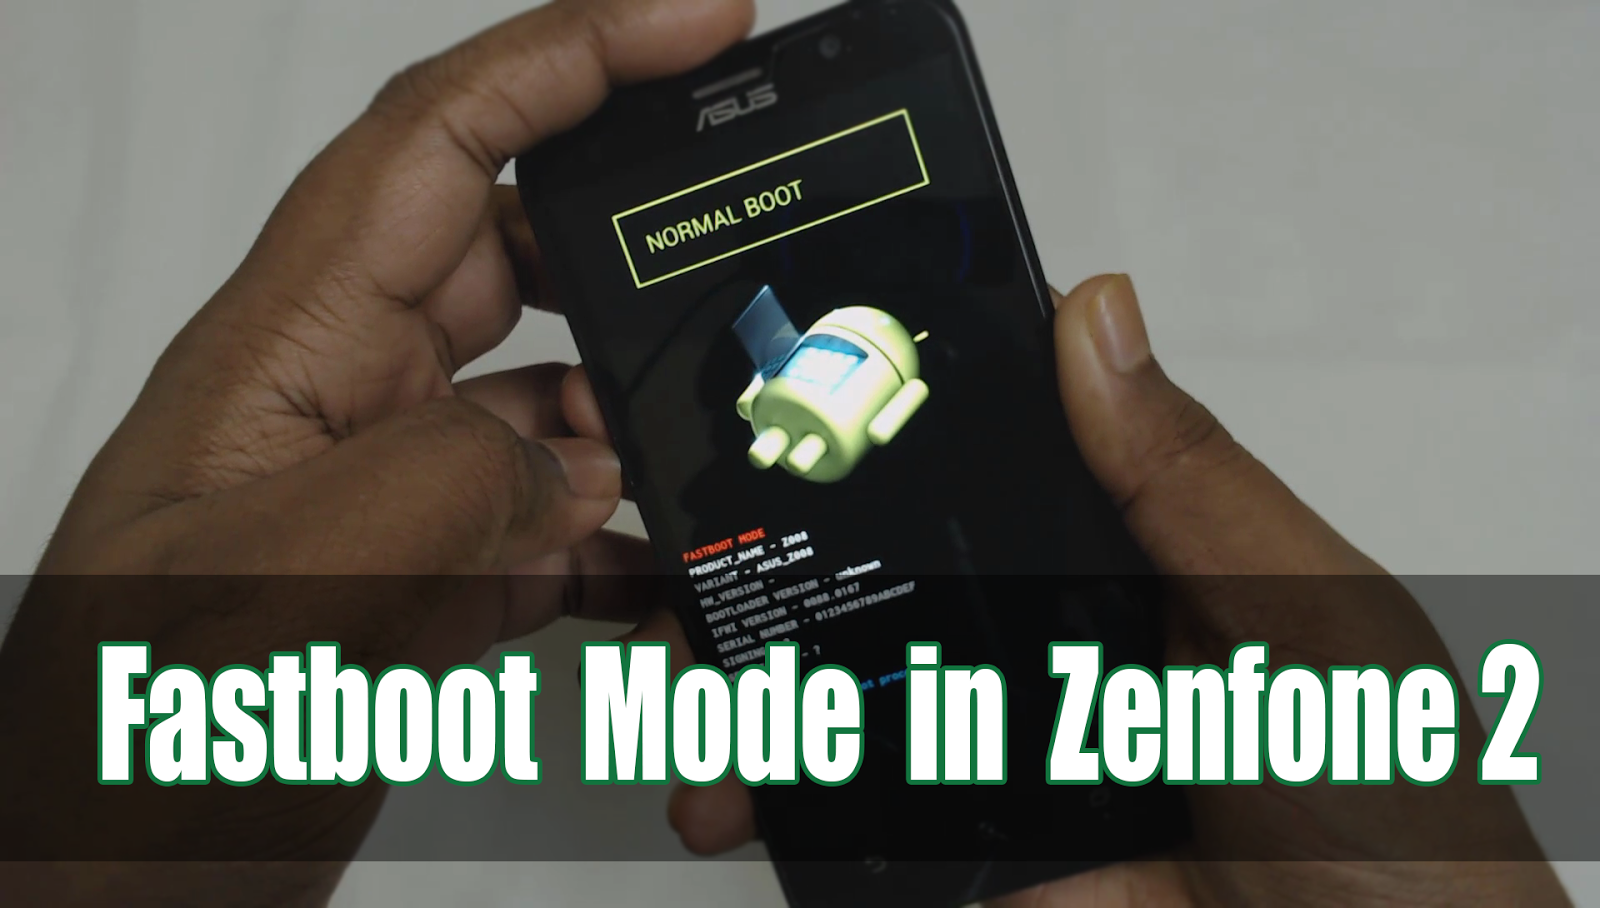 Latest] How to Enter Fastboot Mode in Zenfone 2 ~ Tech YouTubers